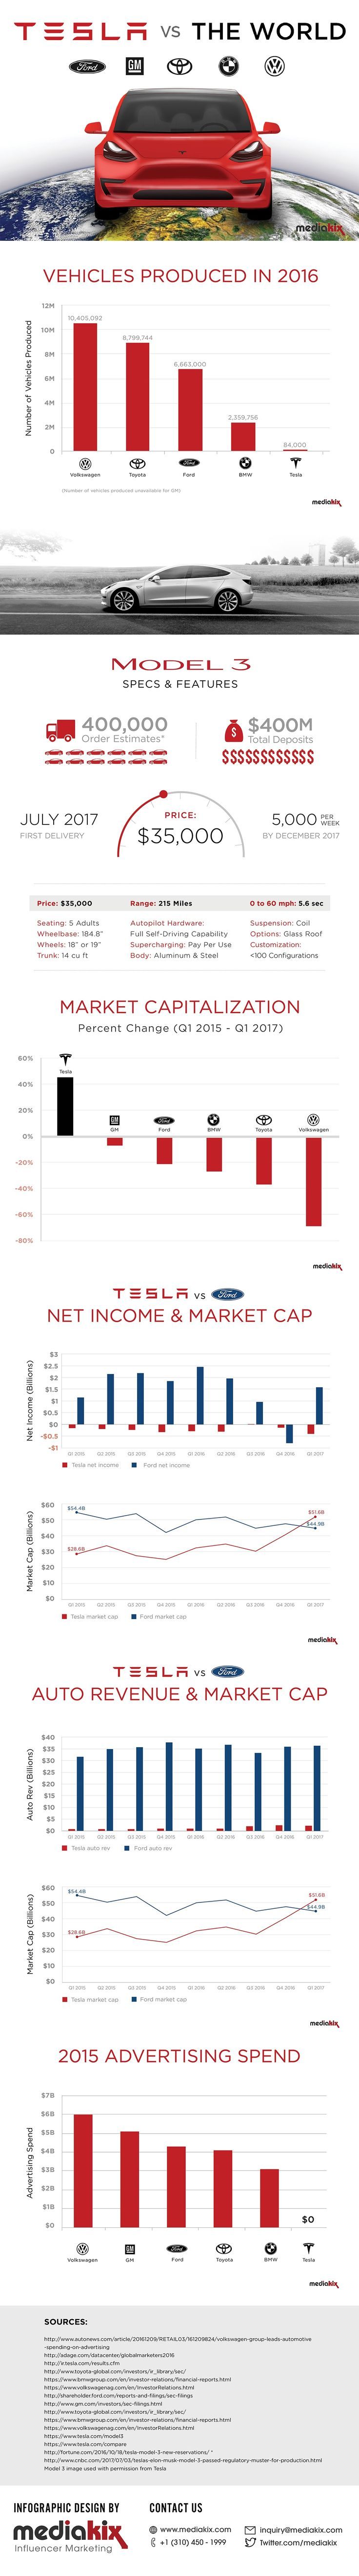 To better understand the existing landscape of the auto industry and Tesla's place within it, mediakix has compared Tesla's market capitalization, net income, and automotive revenue to those of Ford, General Motors, Toyota, BMW, and Volkswagen.  In comparing Ford, GM, Toyota, BMW, and Volkswagen's marketing capitalization for the last two years (from Q1 2015 to Q1 2017) against Tesla's, we found that Tesla was the only auto company that saw an increase (44.6%) in market cap. The market cap…